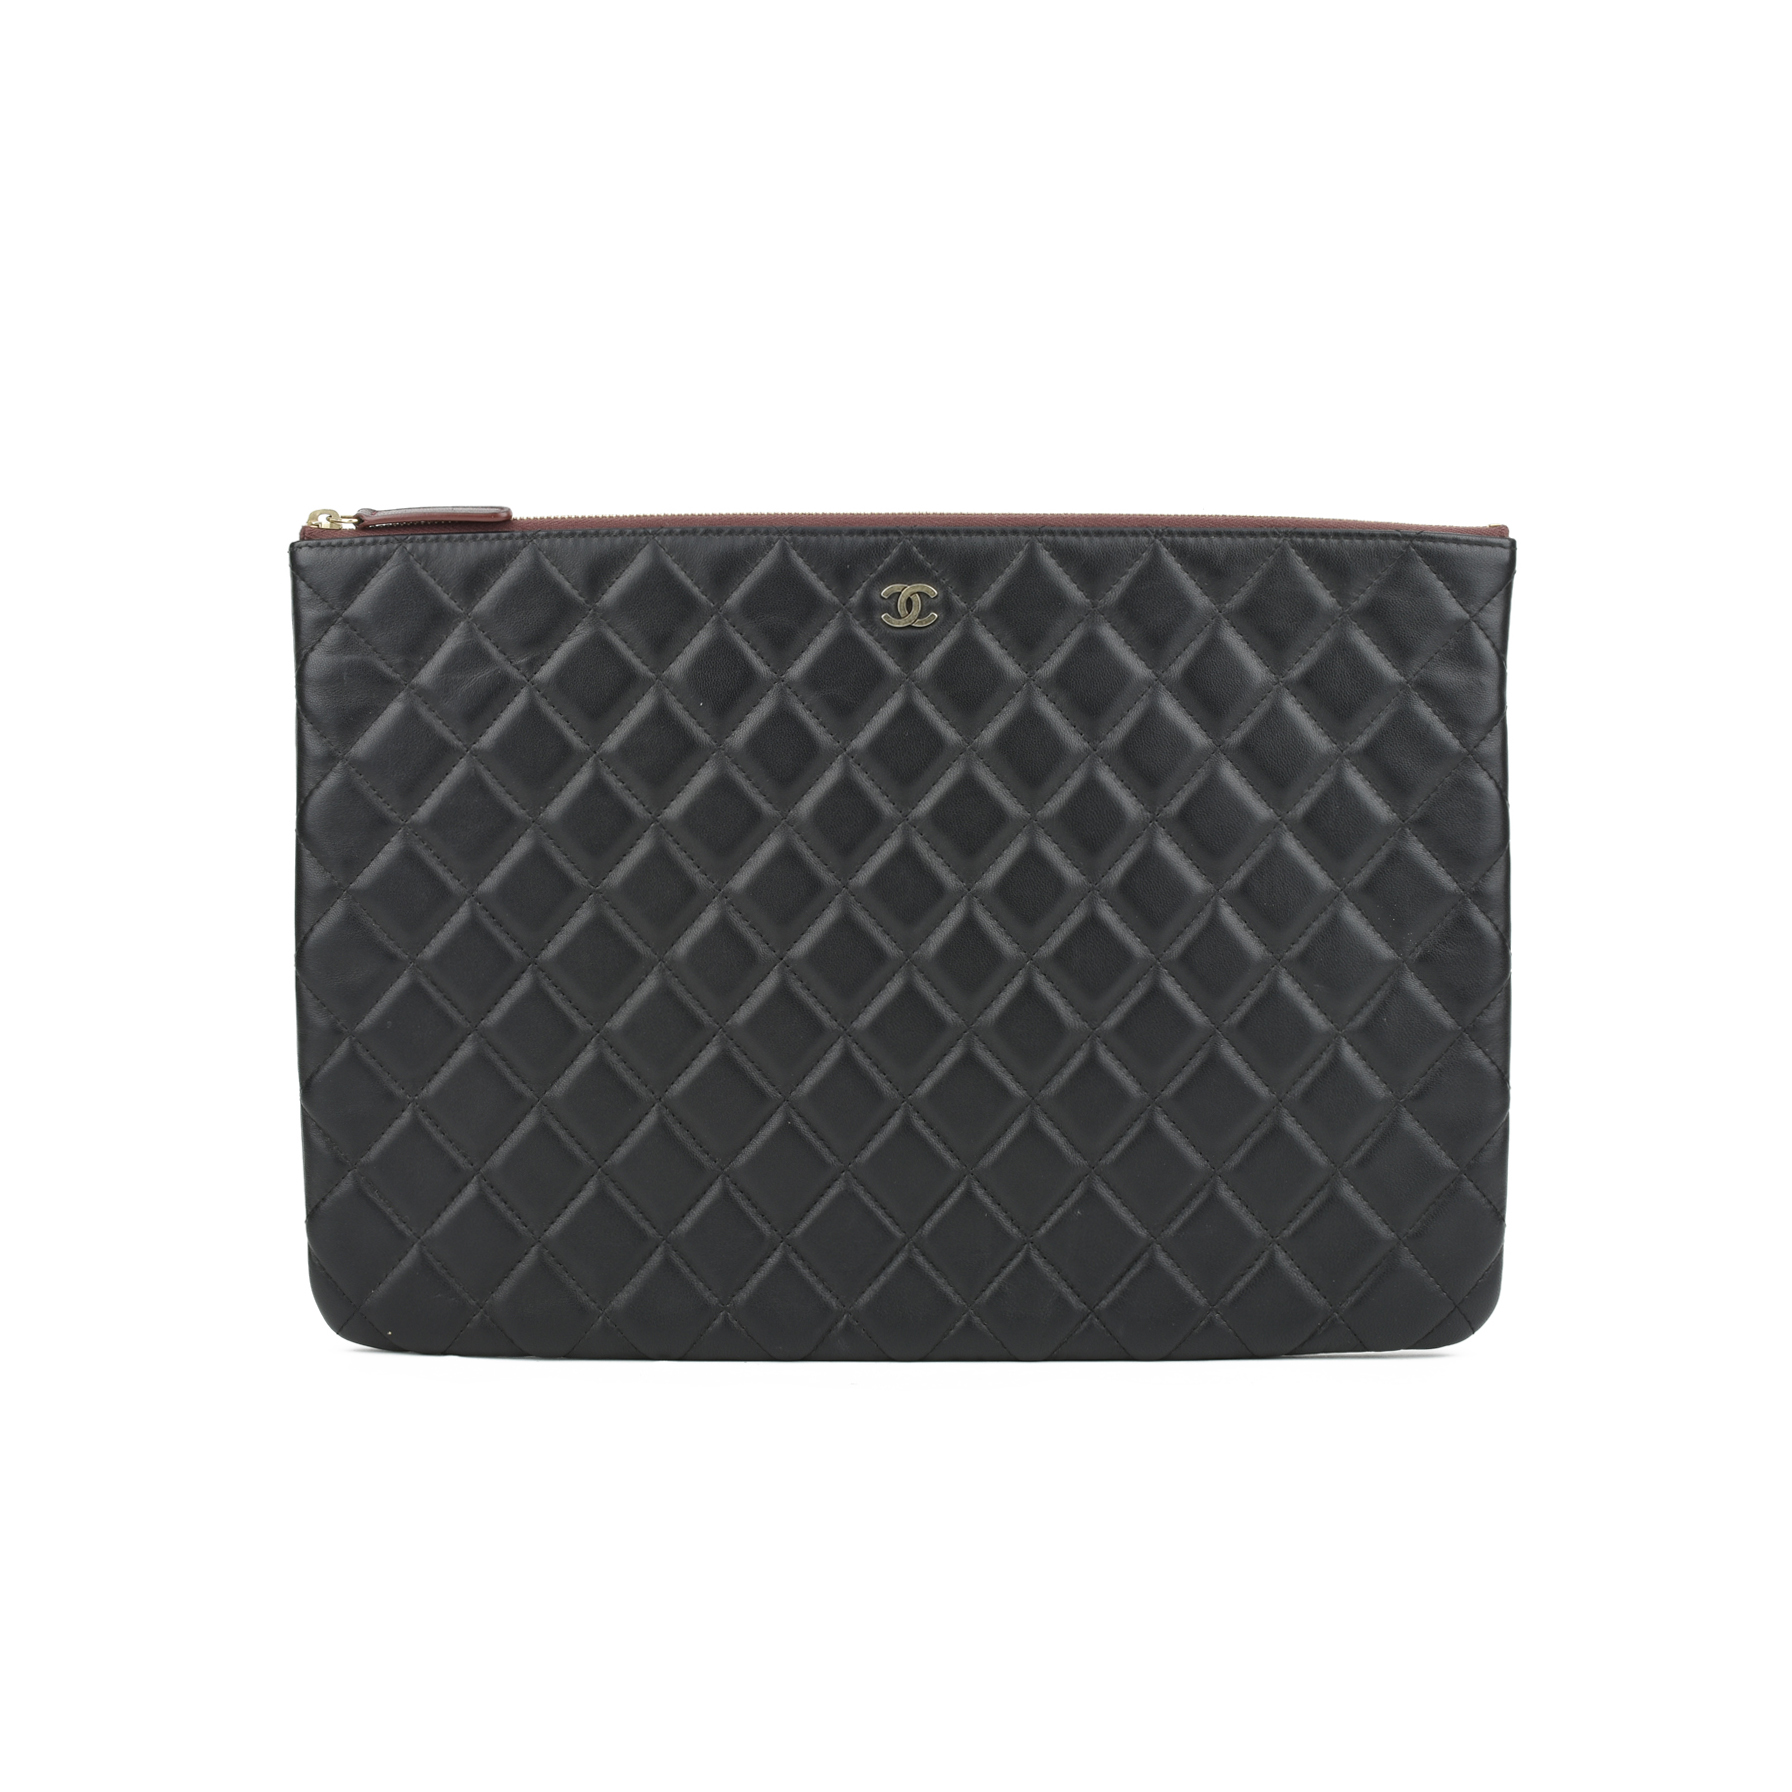 7ce49c7883 Authentic Second Hand Chanel Lambskin Quilted Pouch (PSS-051-00281) - THE  FIFTH COLLECTION